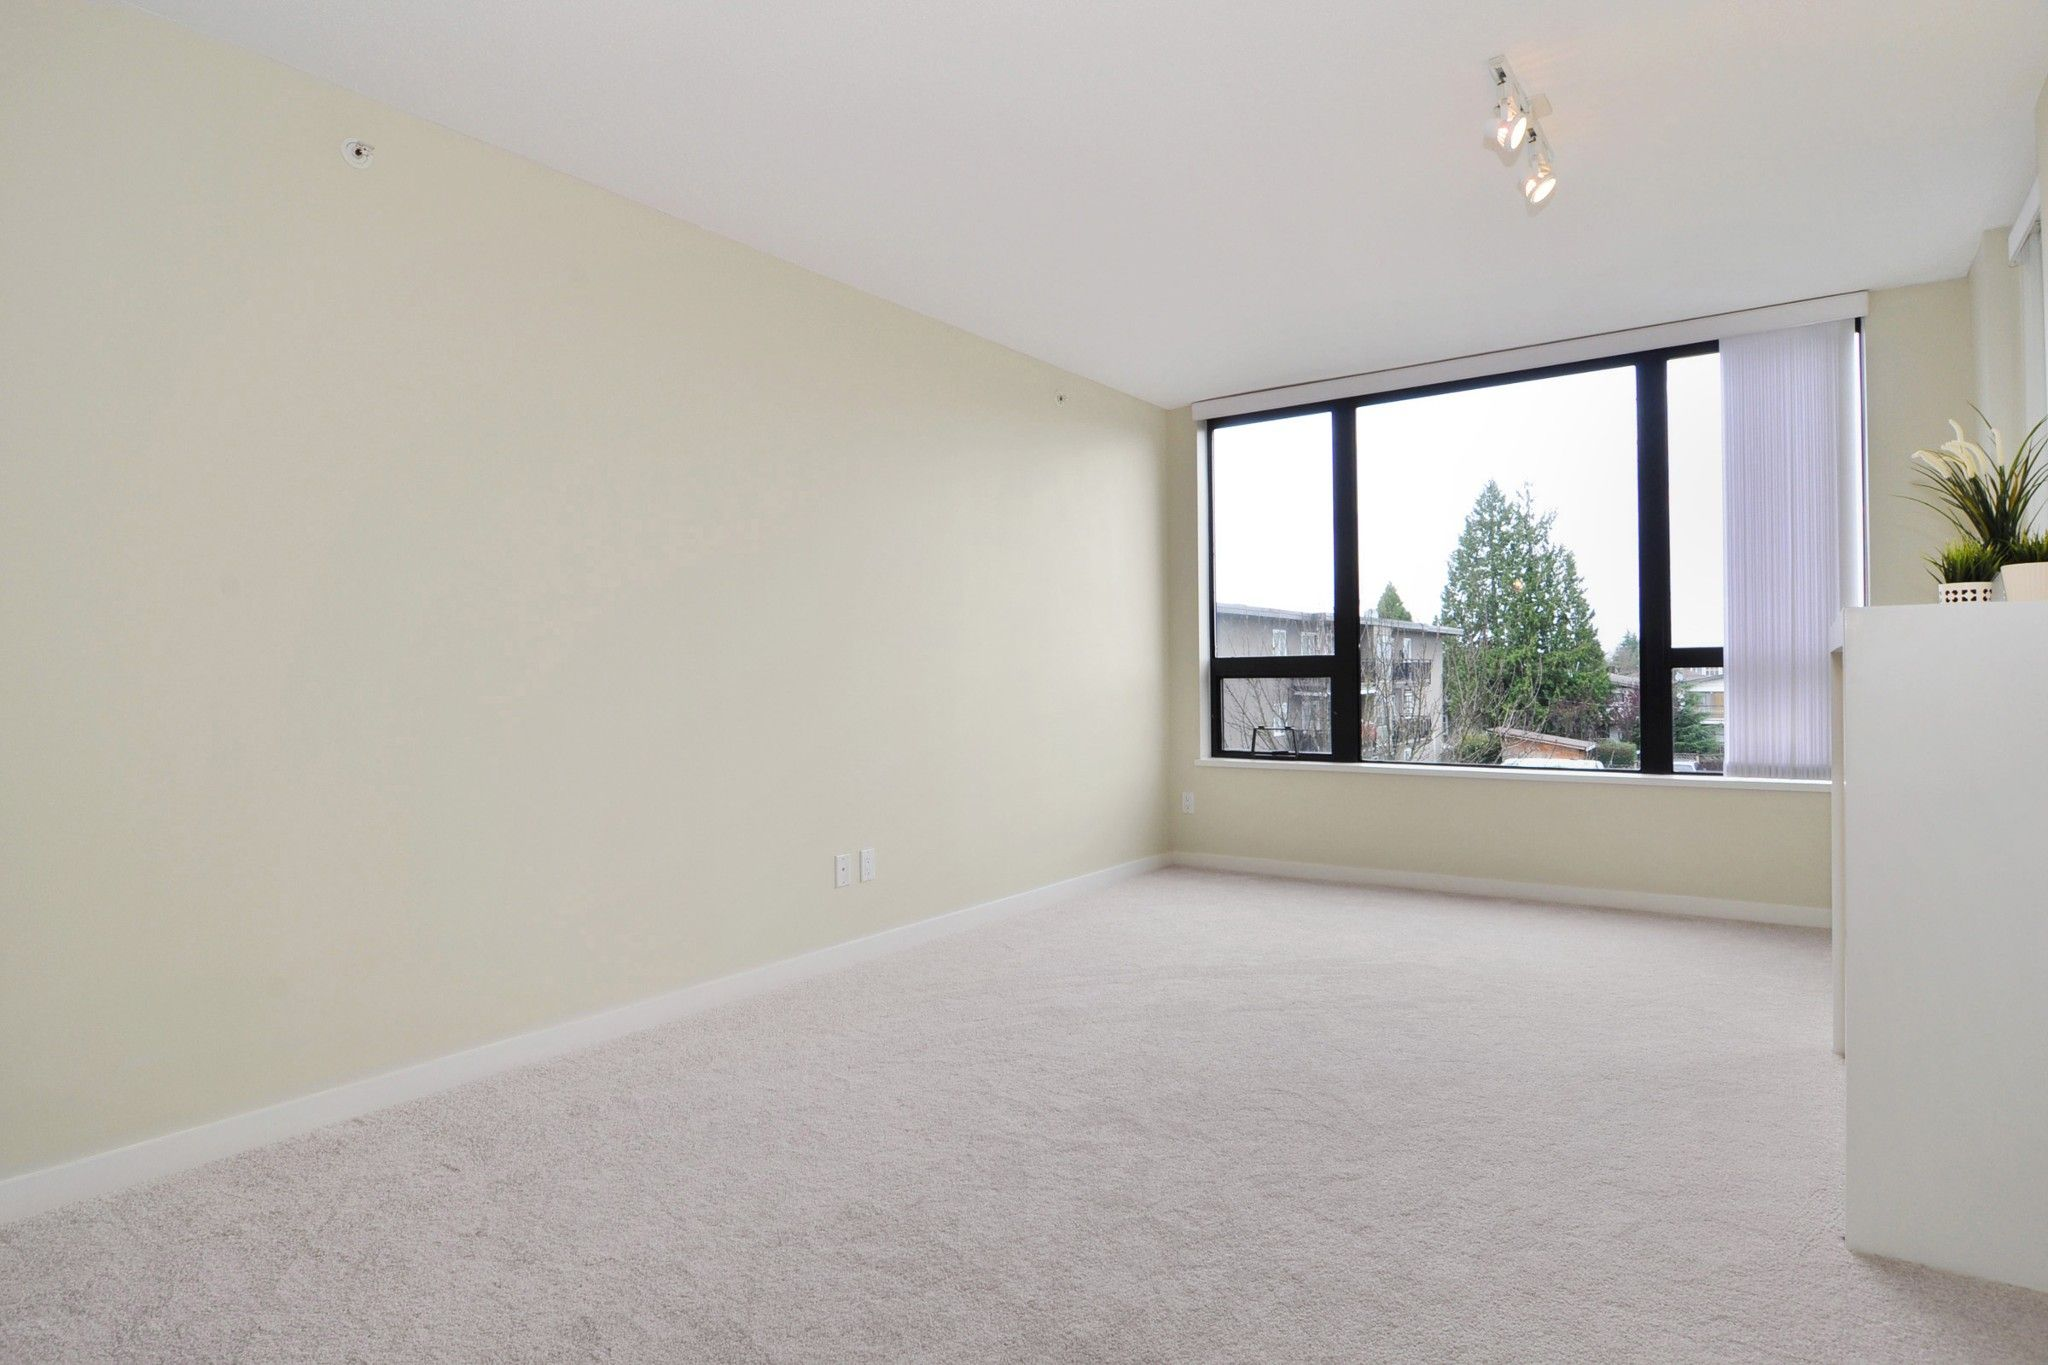 """Photo 3: Photos: 312 7138 COLLIER Street in Burnaby: Highgate Condo for sale in """"STANDFORD HOUSE"""" (Burnaby South)  : MLS®# R2224760"""